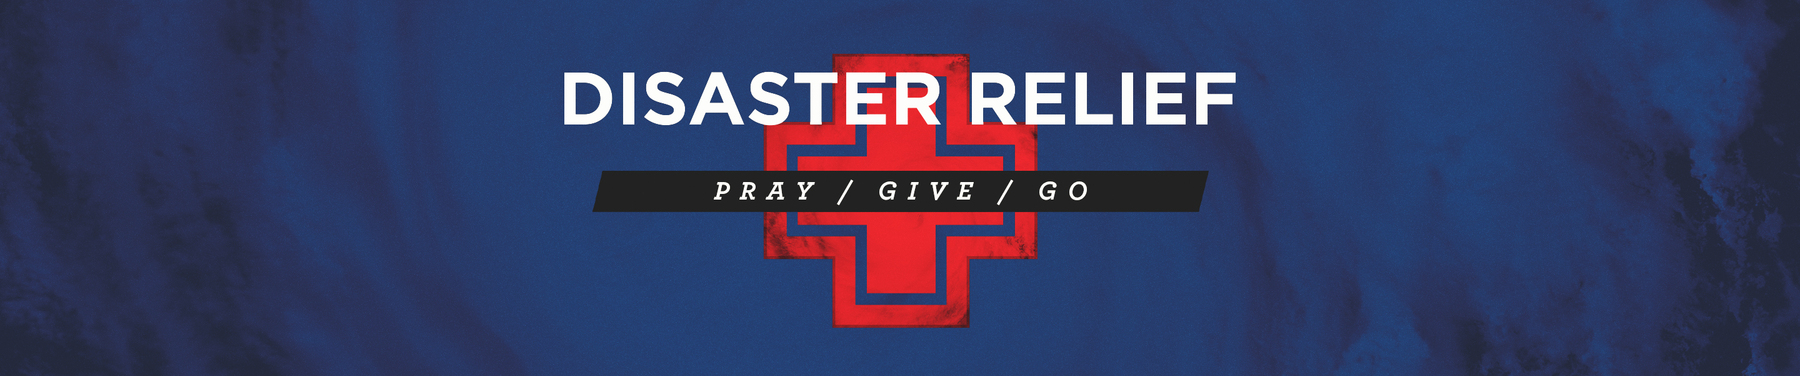 Jefferson Baptist Church: Disaster Relief